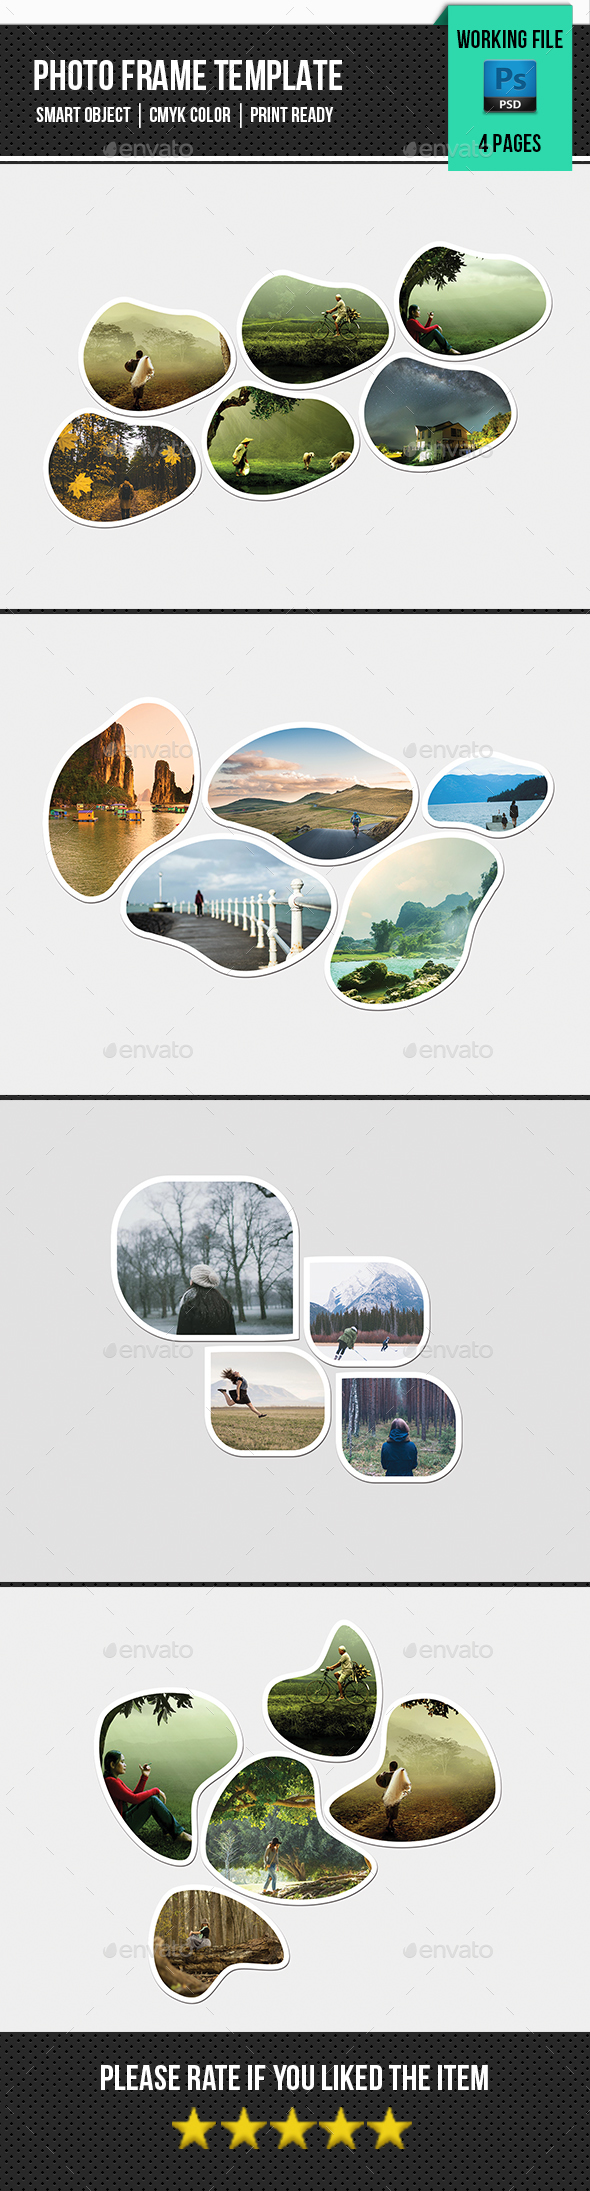 Photo Frame Template-V01 - Nature Photo Templates